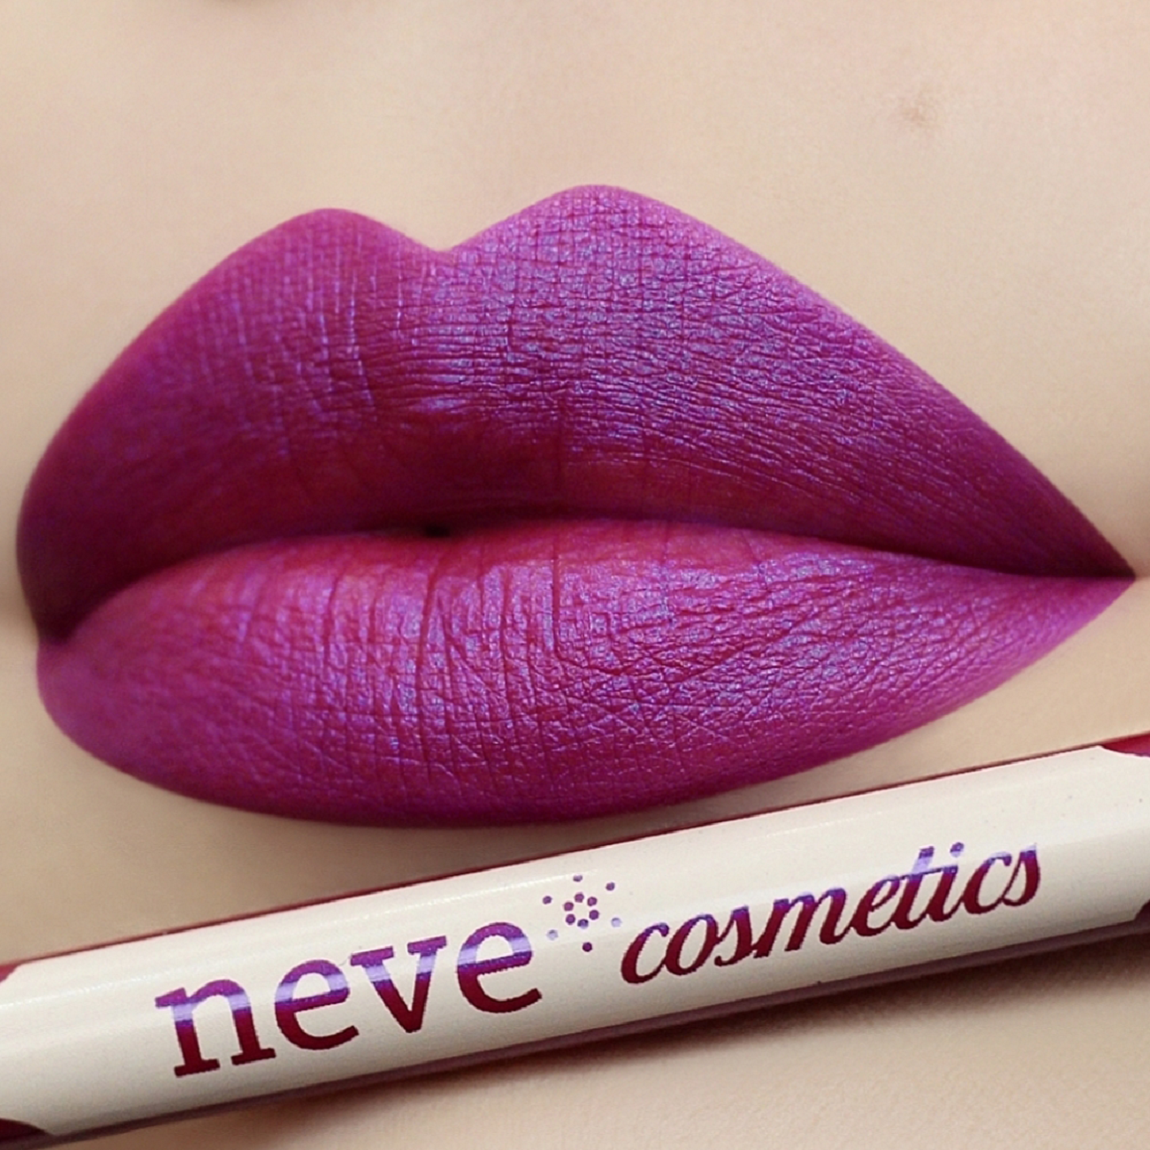 Pastel lips Trance: Fuchsia saturated with periwinkle blue interference dark.